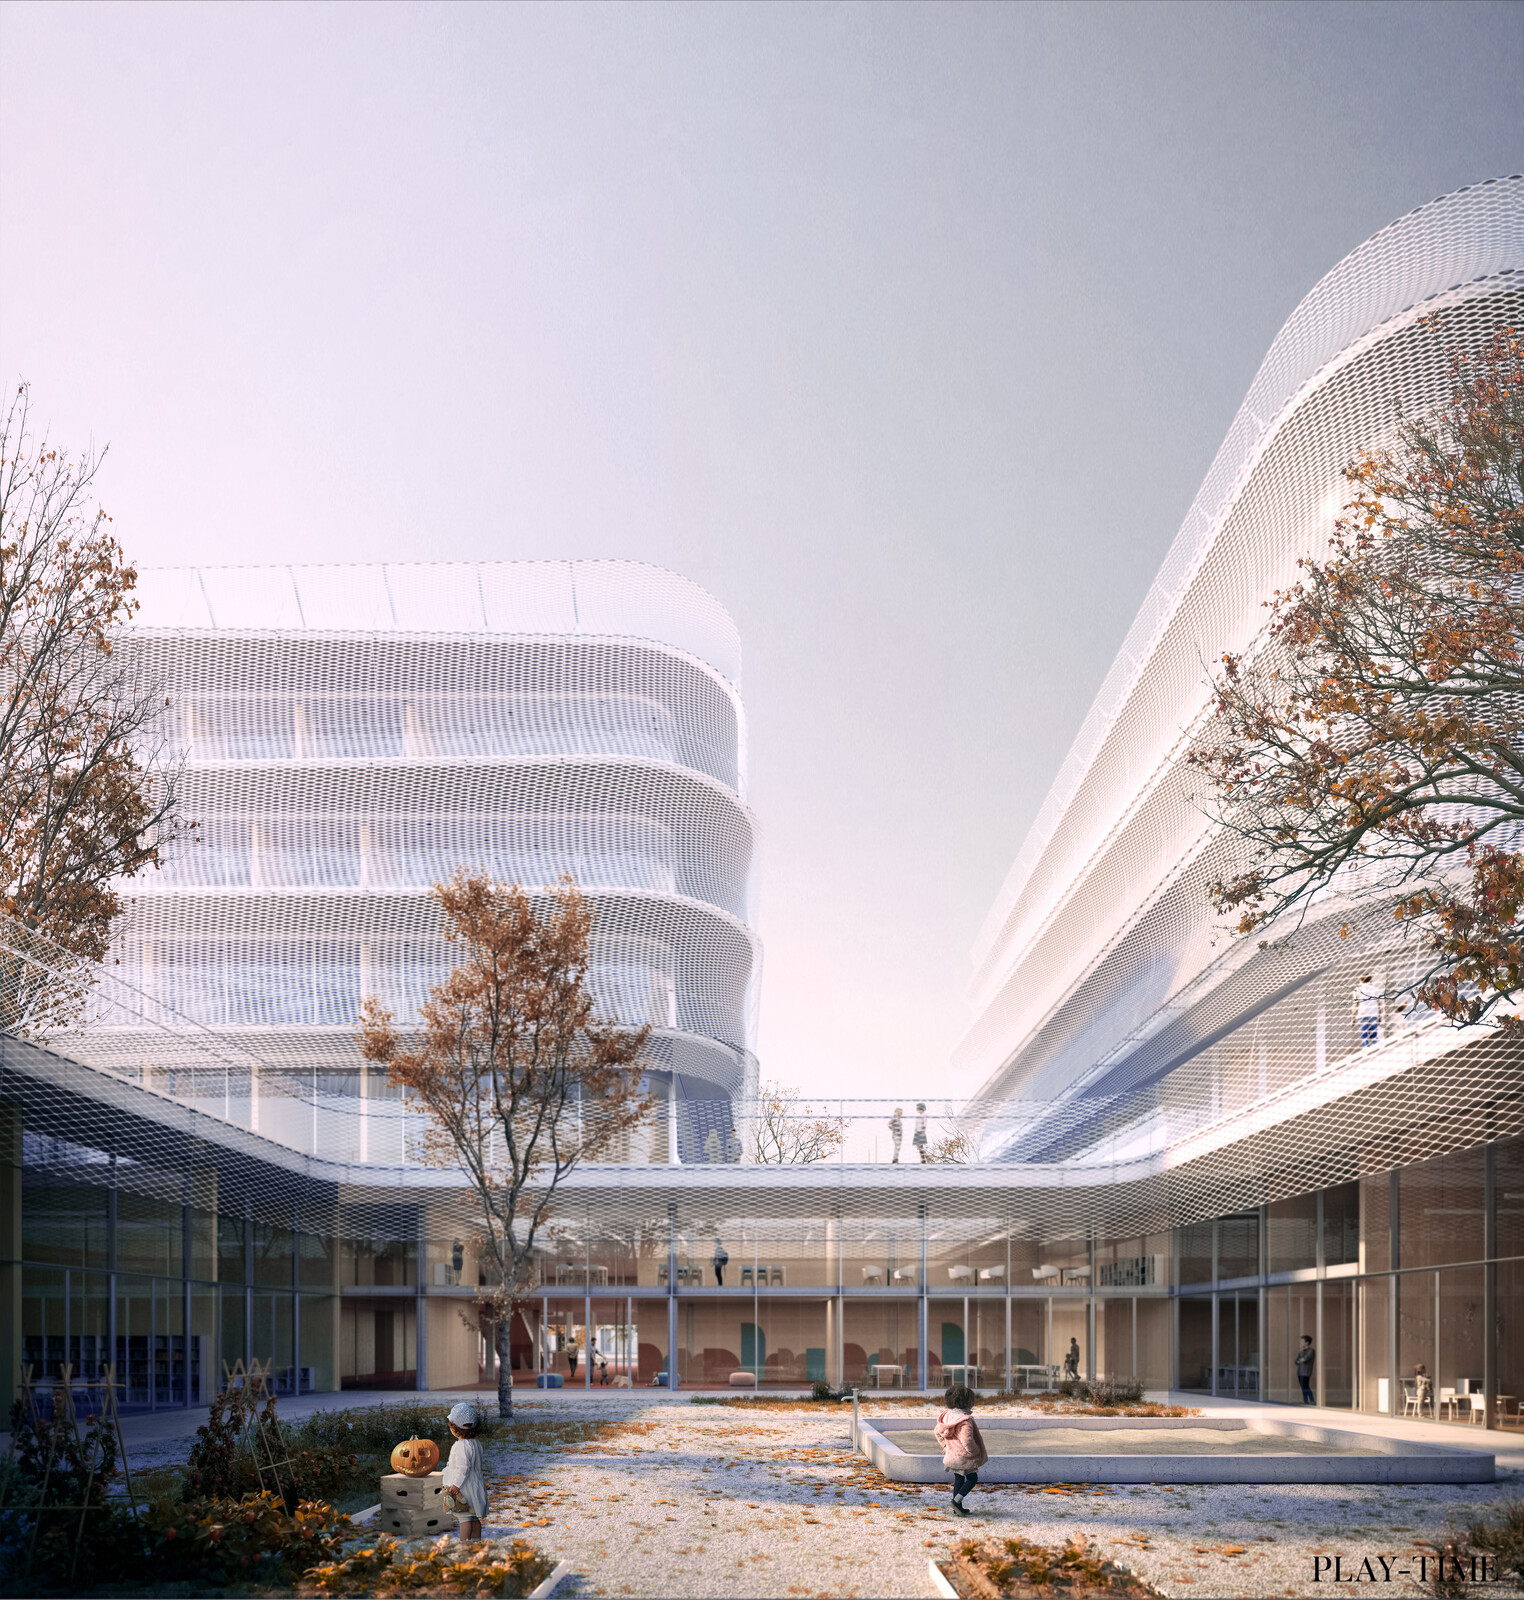 New school in Zurich designed by Alonso Sosa Architects. Image by Play-time